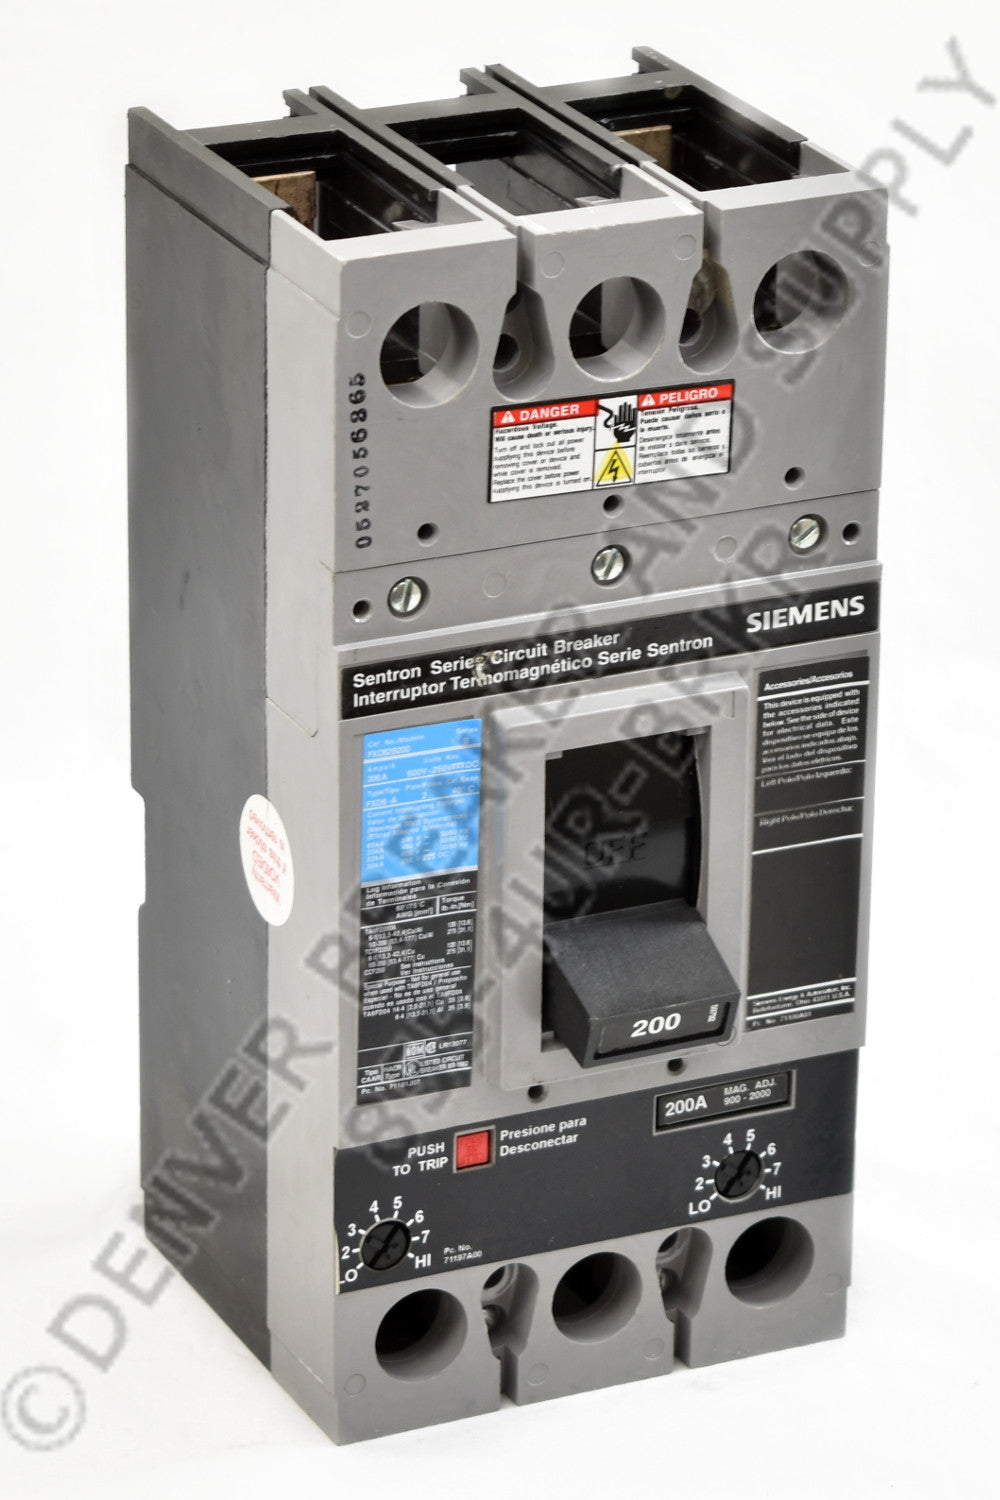 Siemens FD62B175 Circuit Breakers